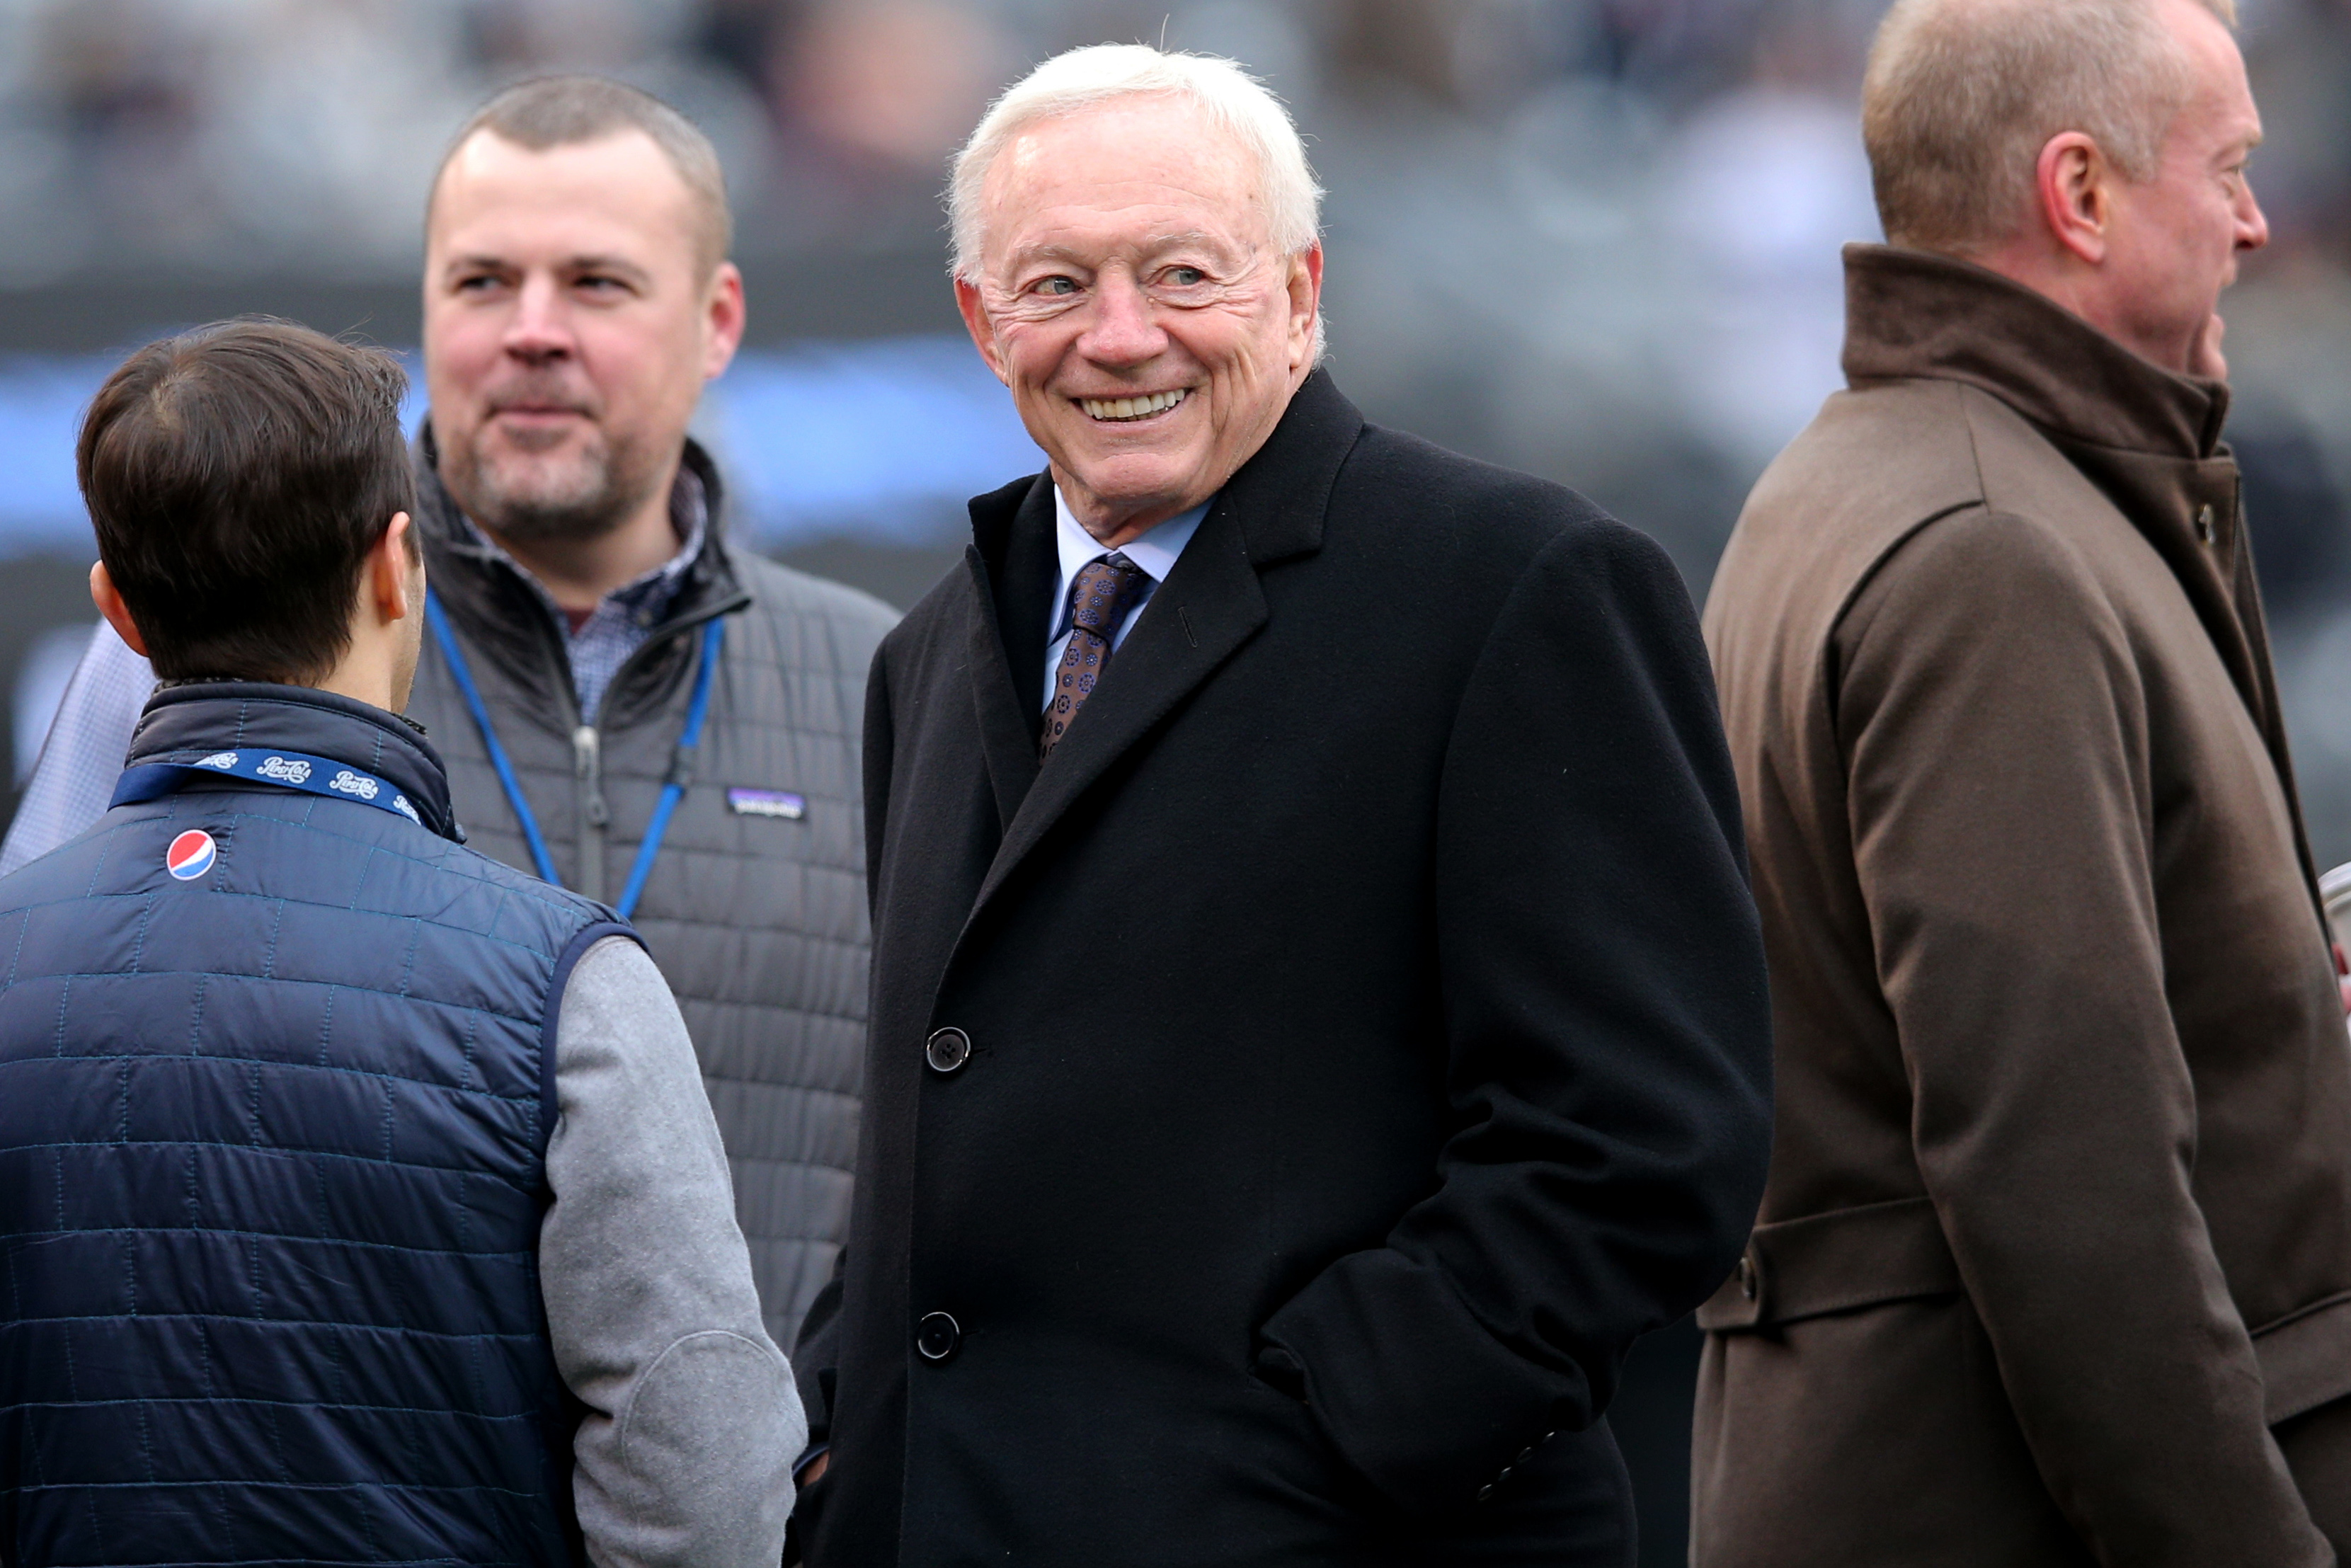 Dec 30, 2018; East Rutherford, NJ, USA; Dallas Cowboys owner Jerry Jones (middle) looks on from the sidelines before a game against the New York Giants at MetLife Stadium. Mandatory Credit: Brad Penner-USA TODAY Sports